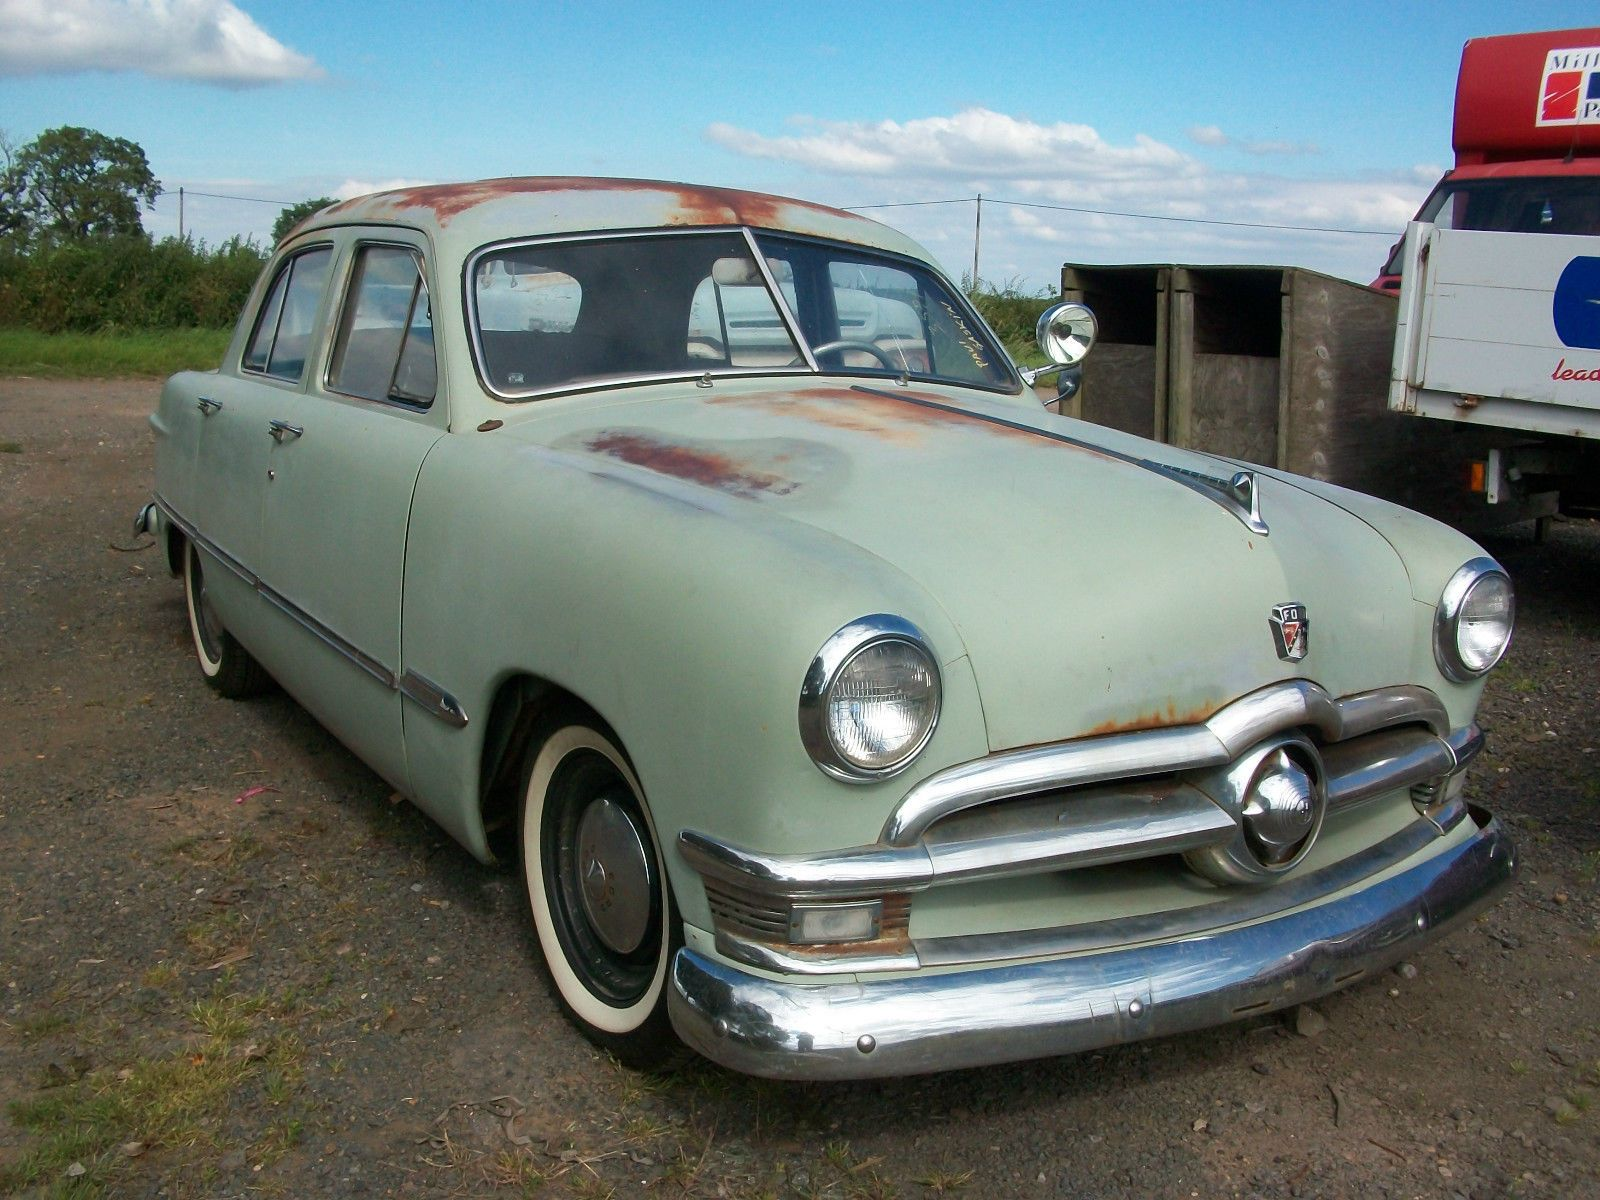 1950 Ford Shoebox Sedan Flathead V8 Original Patina Classic American Ebay Ford Shoebox Shoe Box Sedan